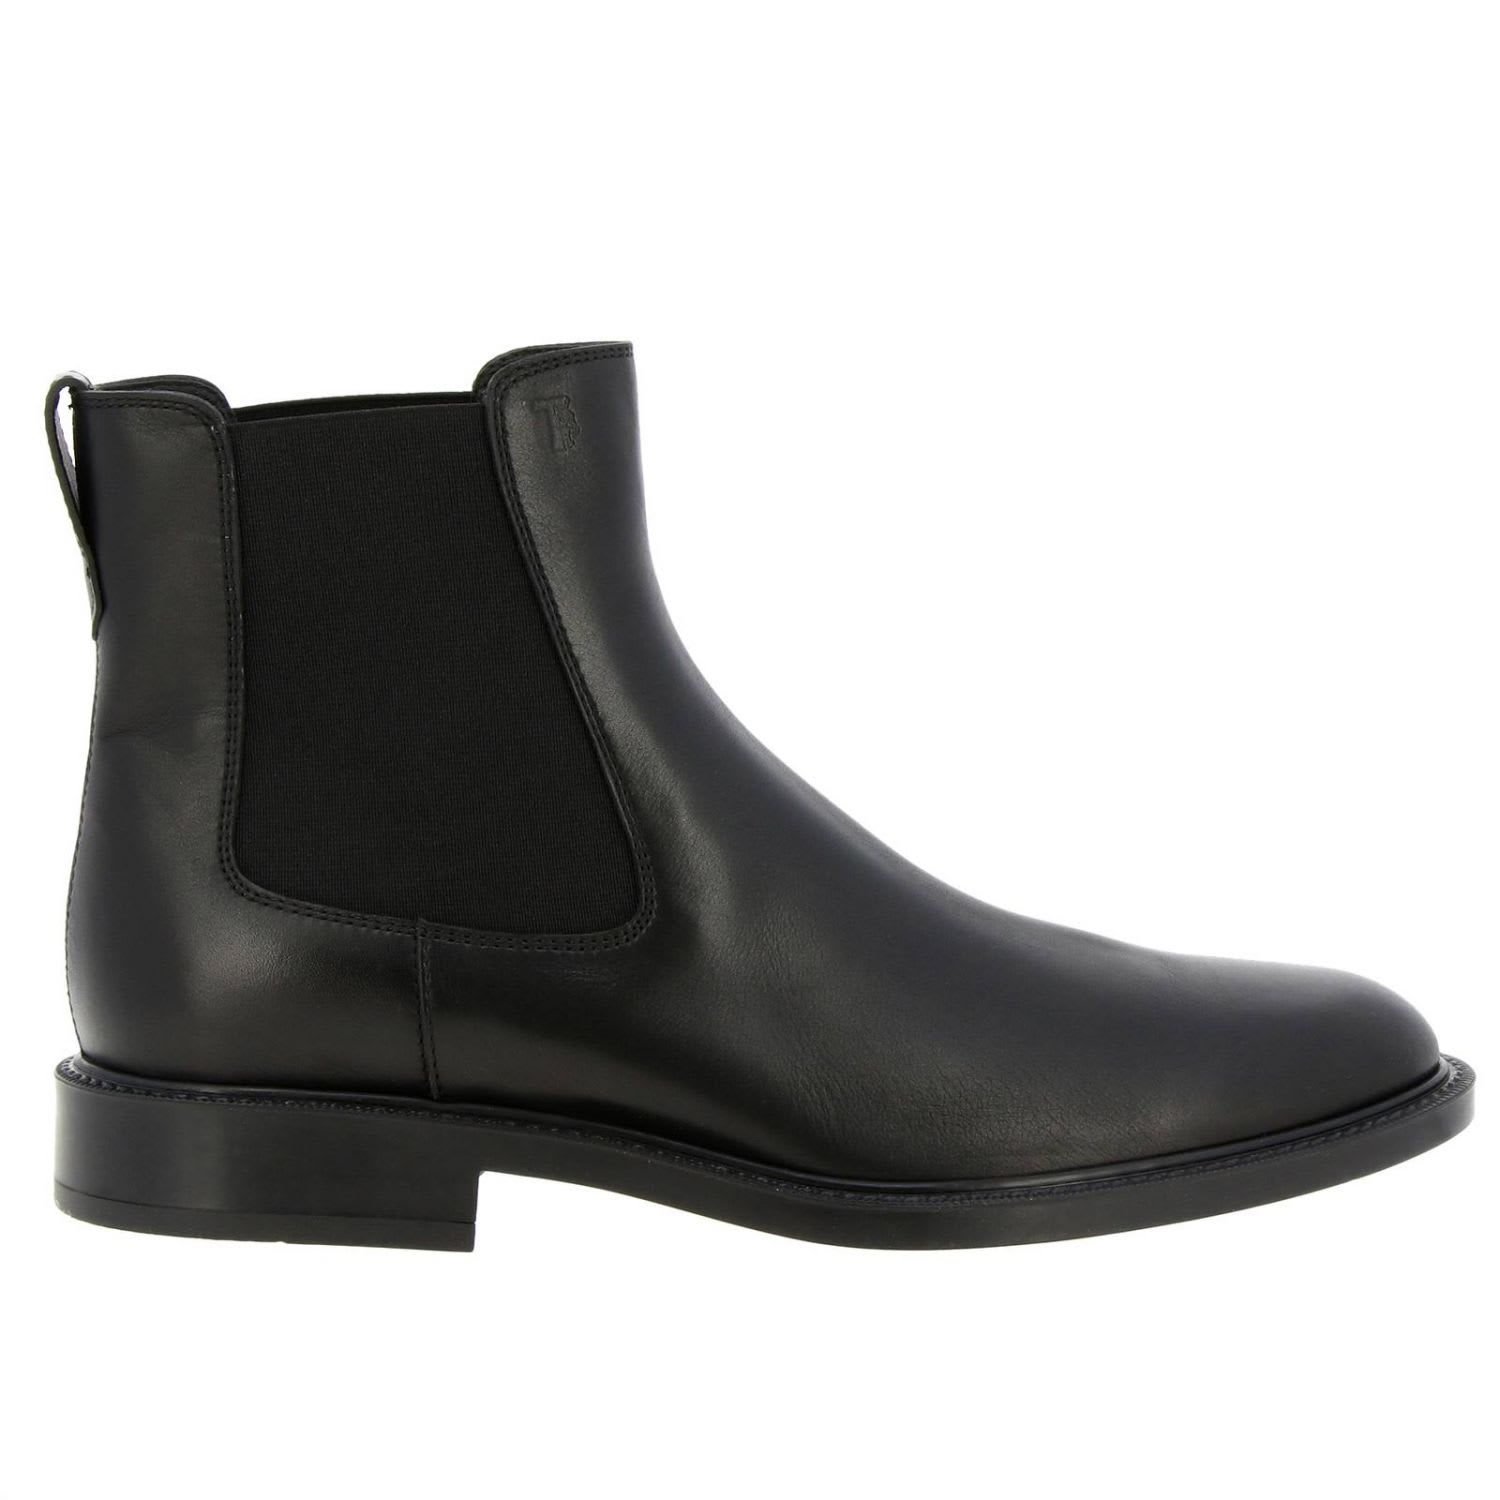 Tods Boots Tods Ankle Boots In Smooth Leather With Elastic Bands And Rubber Sole